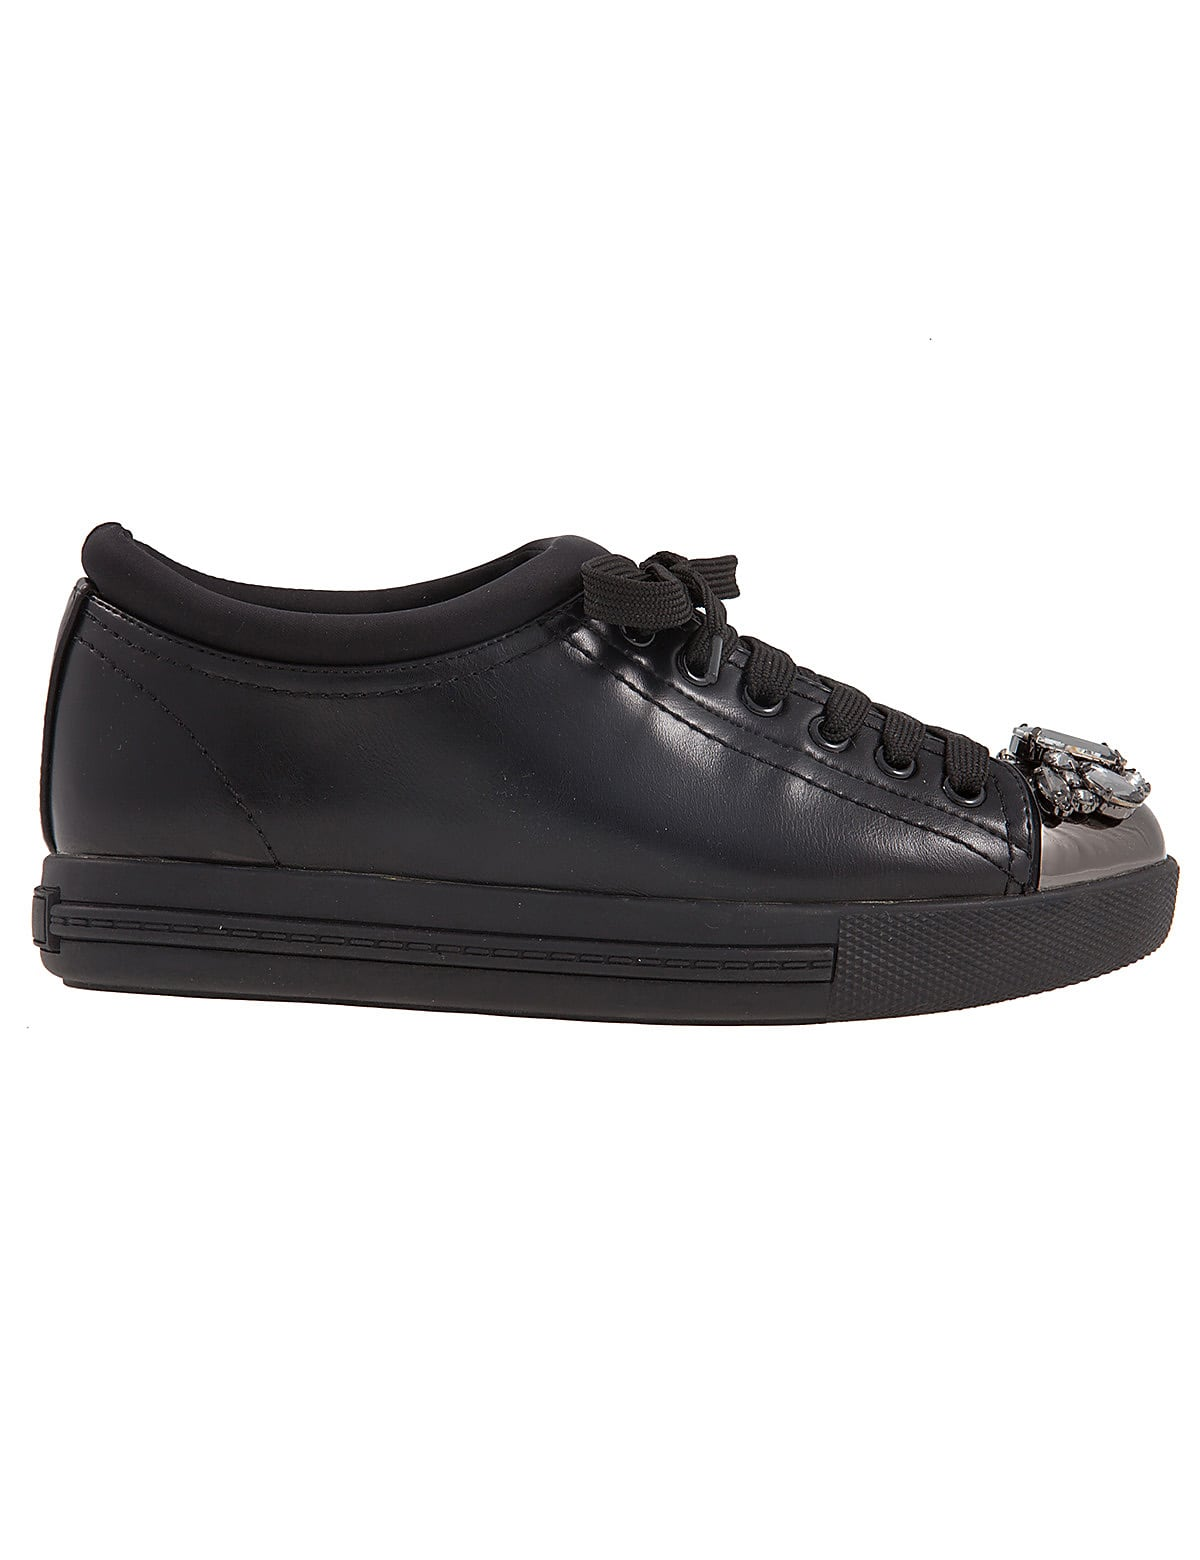 Divine Black mrs fred   sneakers